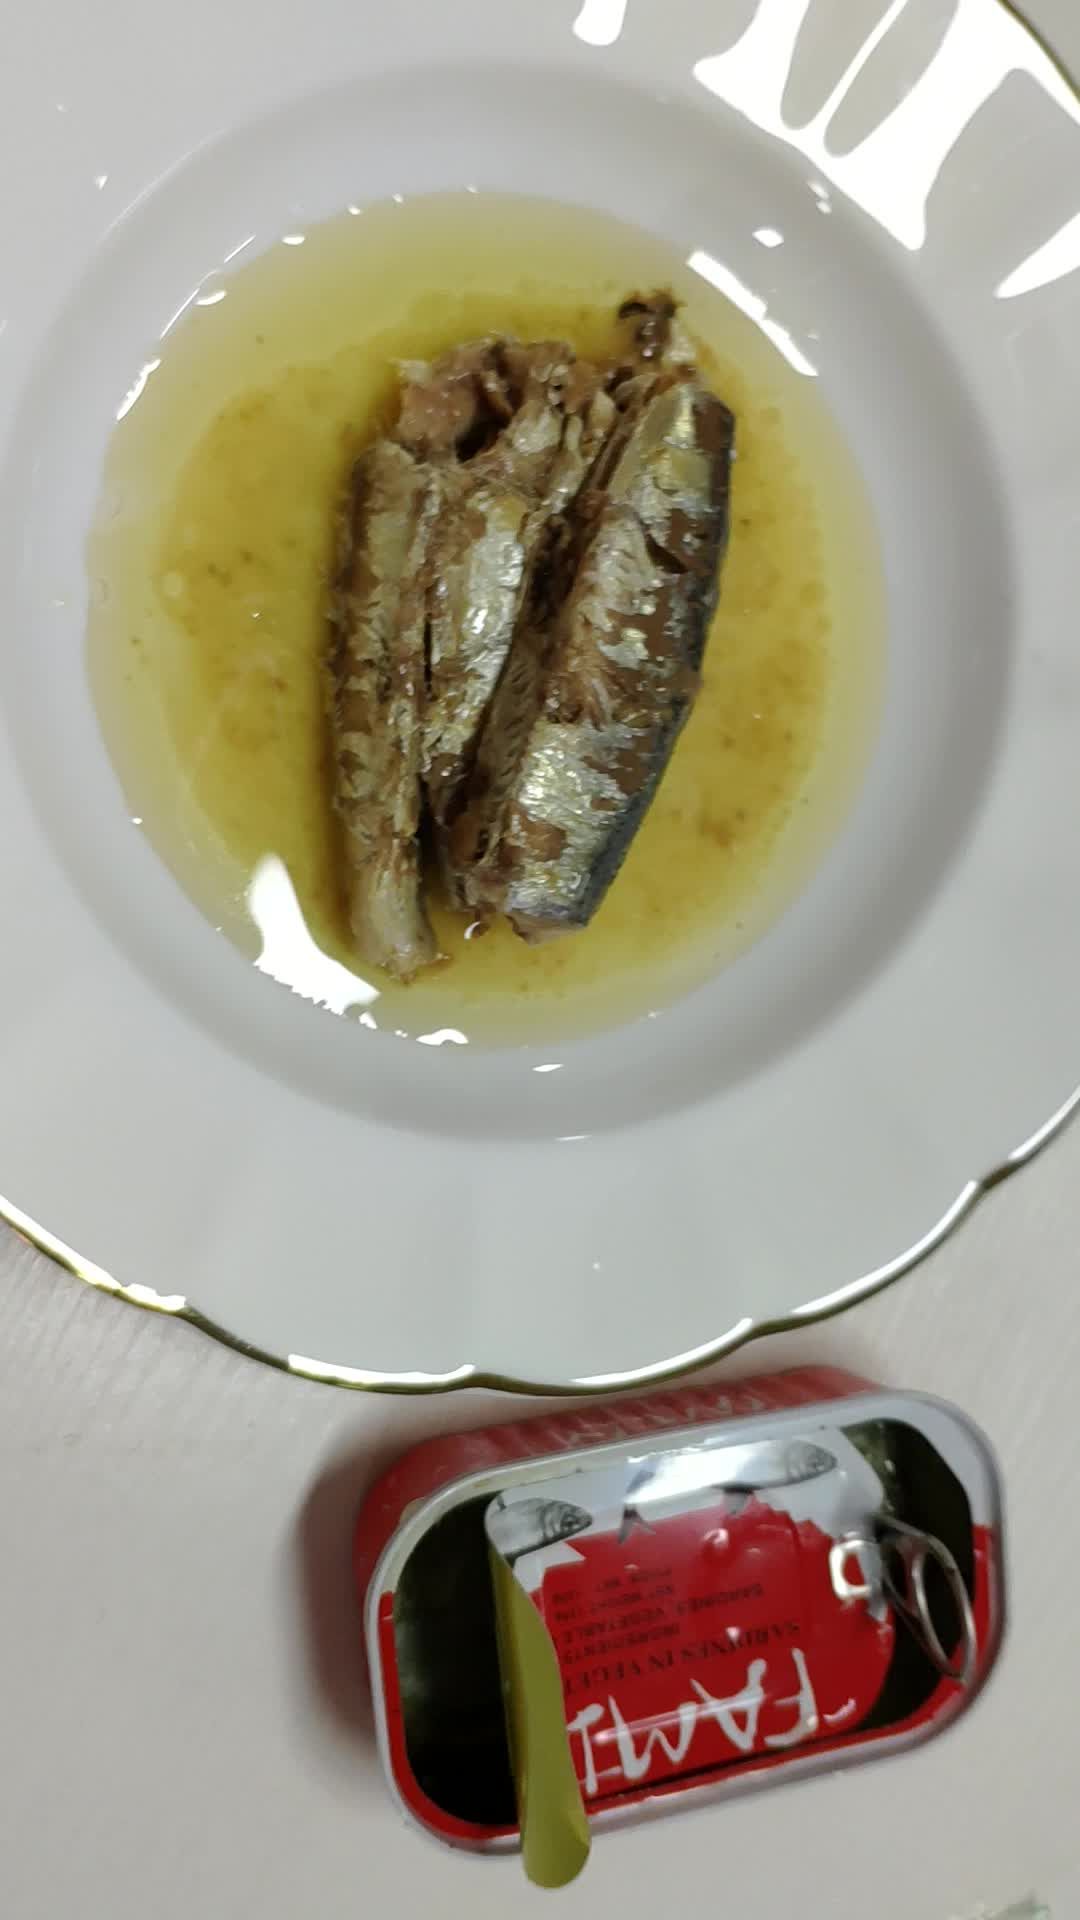 Canned seafoods Chinese canned sardines imports of fish in tomato sauce